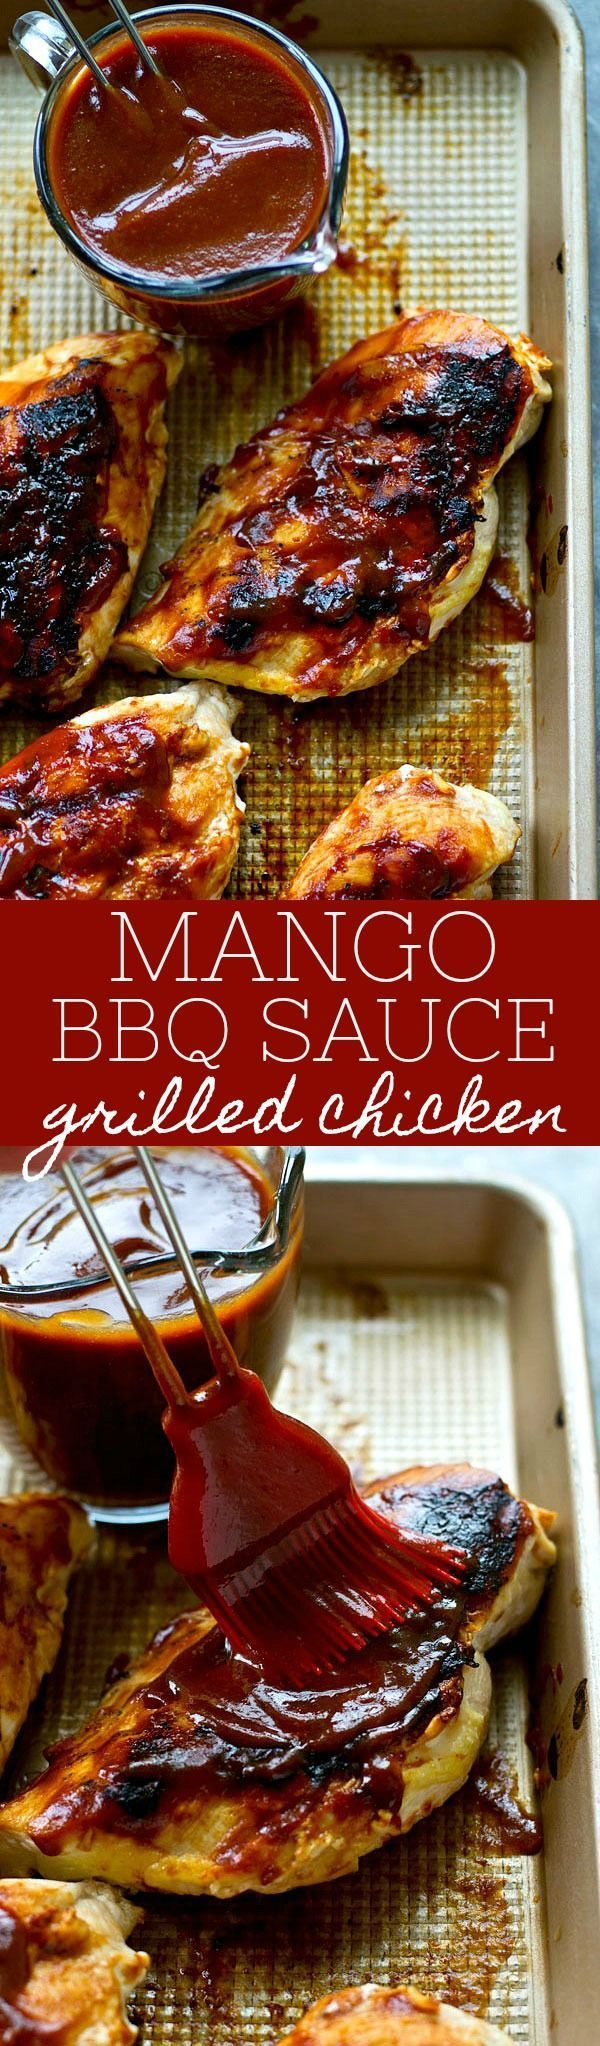 The most flavorful homemade BBQ sauce EVER collides with sweet mango and it all gets generously brushed over juicy grilled chicken.---Put this easy one on the summer dinner rotation! http://grillinglover.org/char-broil-classic-4-burner-gas-grill-review/